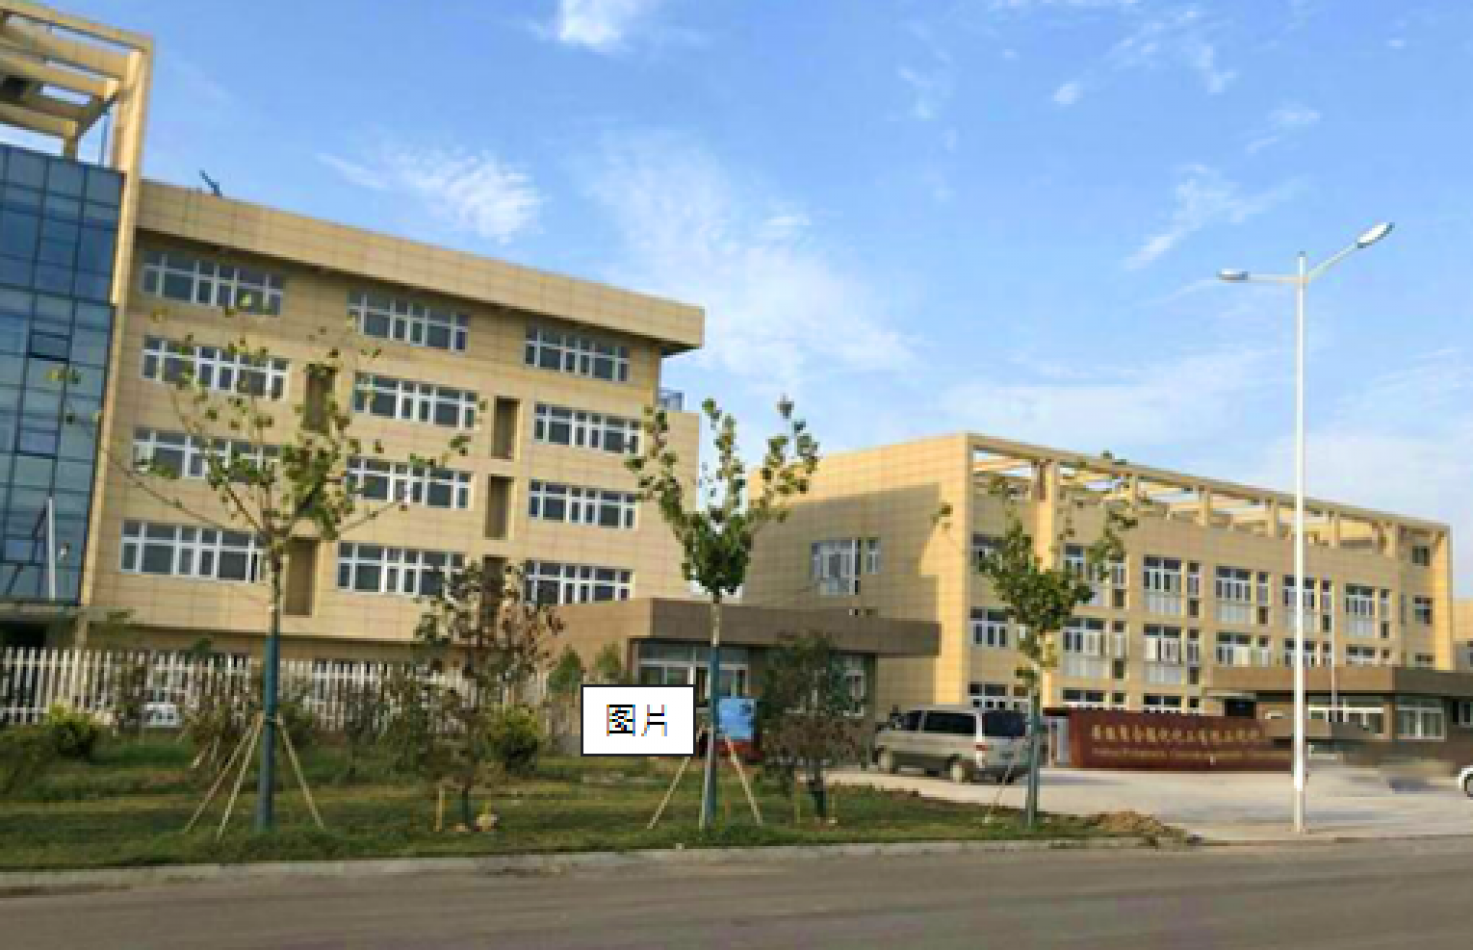 HEFEI POLYMERIC RADIATION TECHNOLOGY CO., LTD